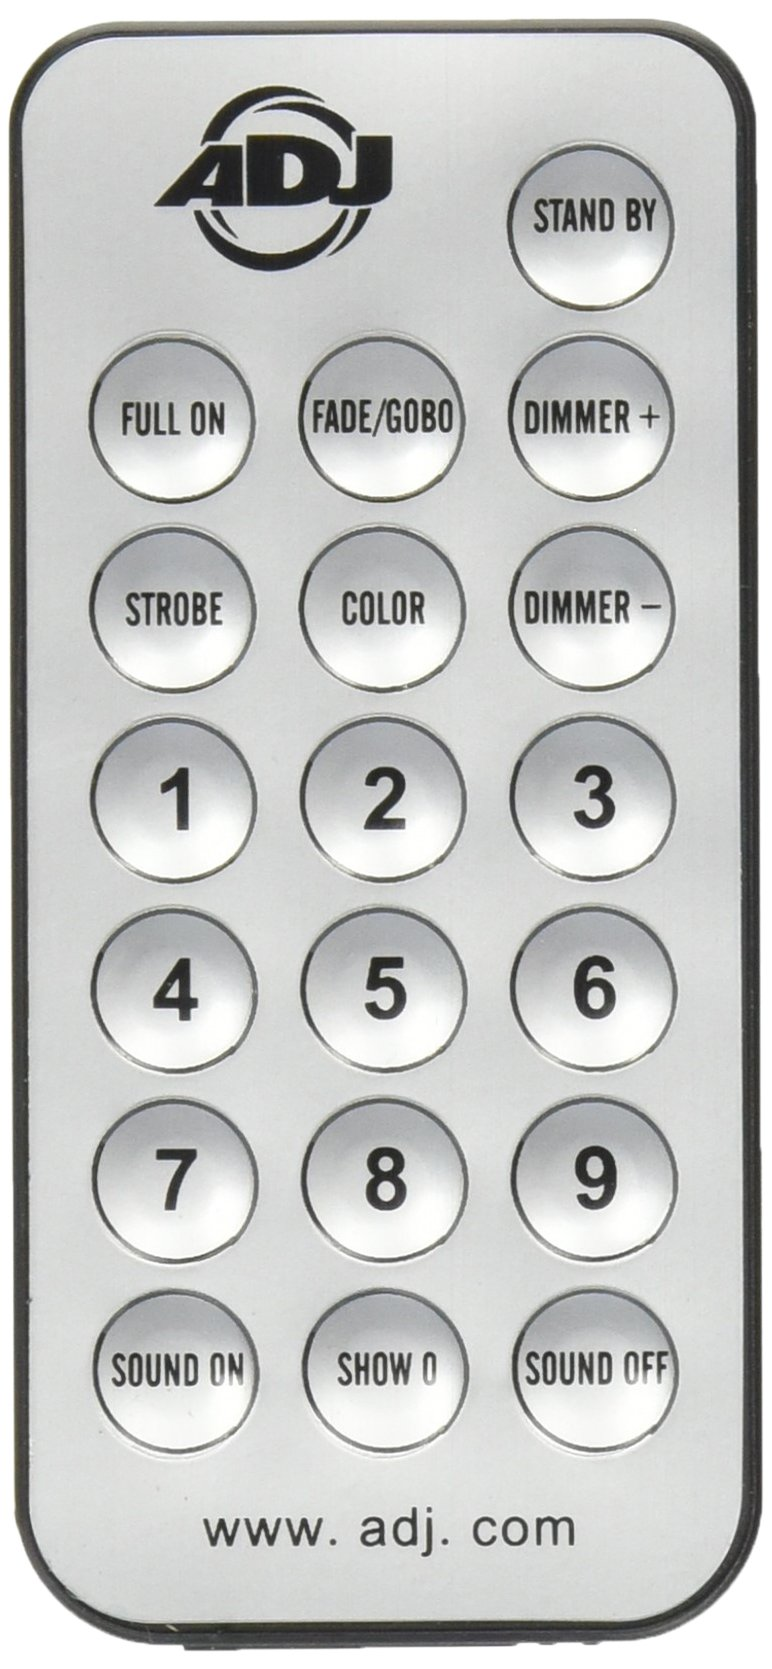 ADJ UC-IR Remote Control for Select ADJ Lighting Fixtures by ADJ Products